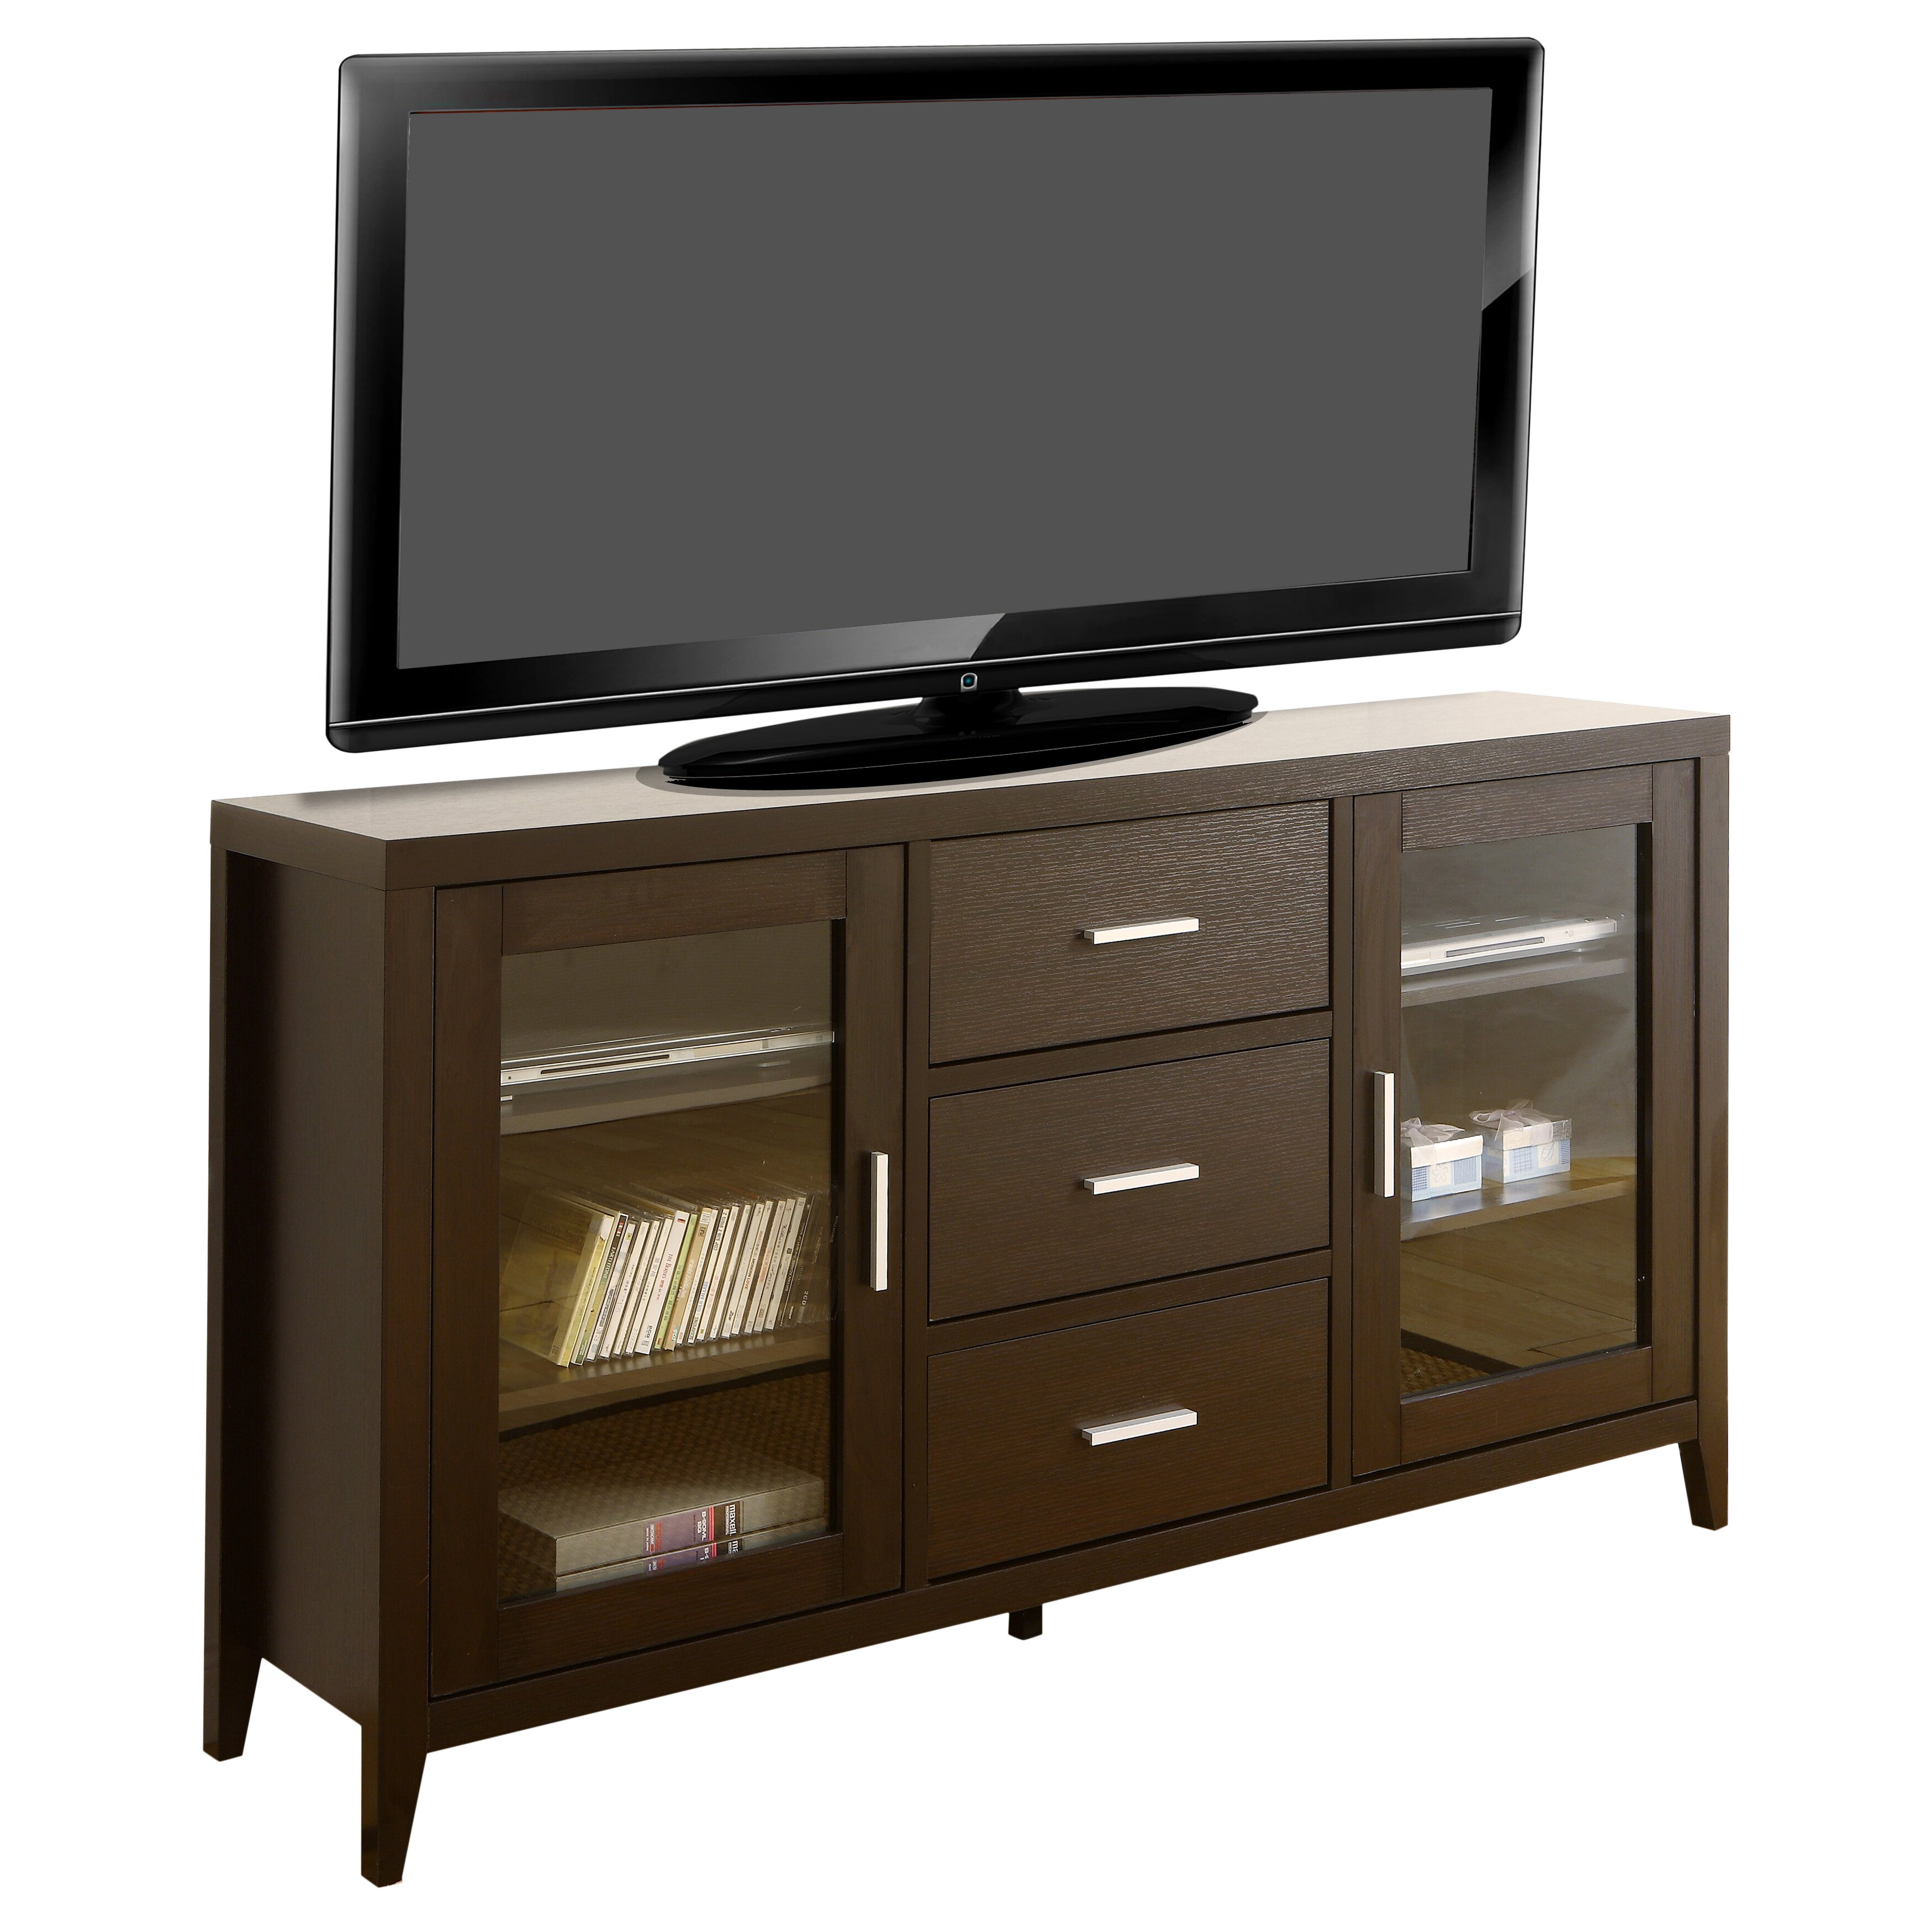 latitude run sideboard and tv stand reviews wayfair. Black Bedroom Furniture Sets. Home Design Ideas